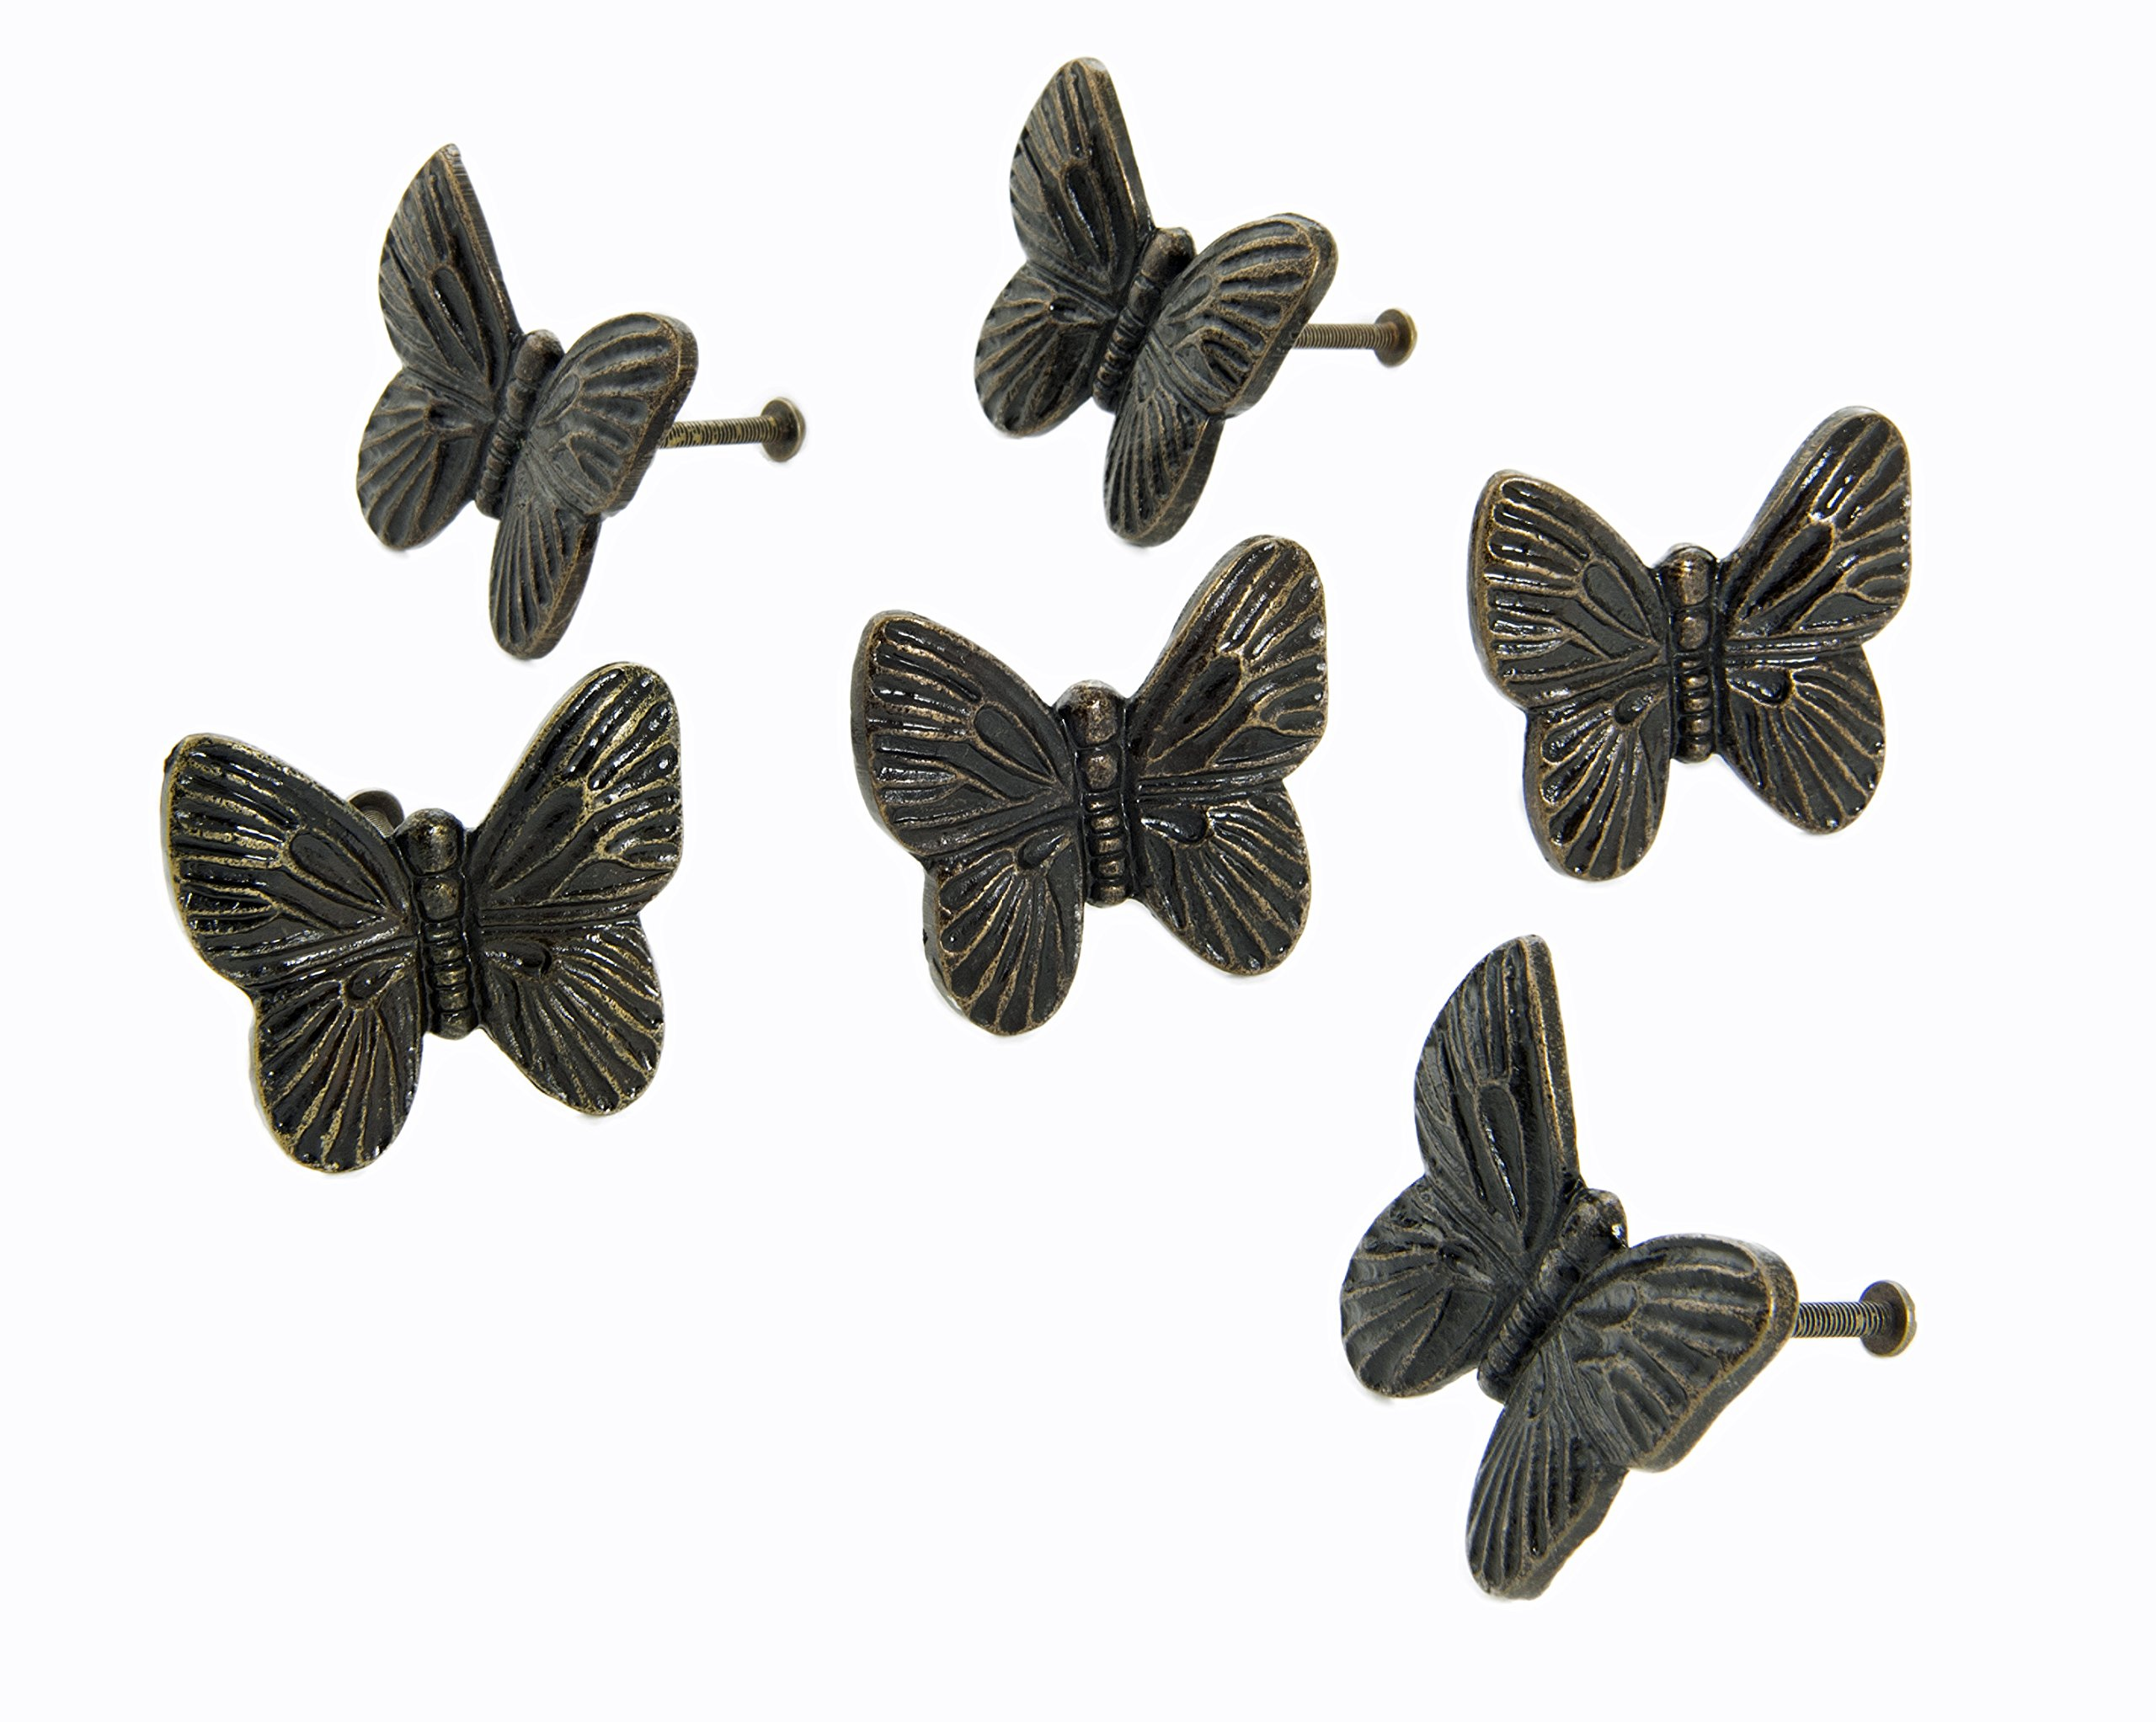 Dritz Home 47063A Cast Iron Butterfly Knob Handcrafted Knobs for Cabinets & Drawers